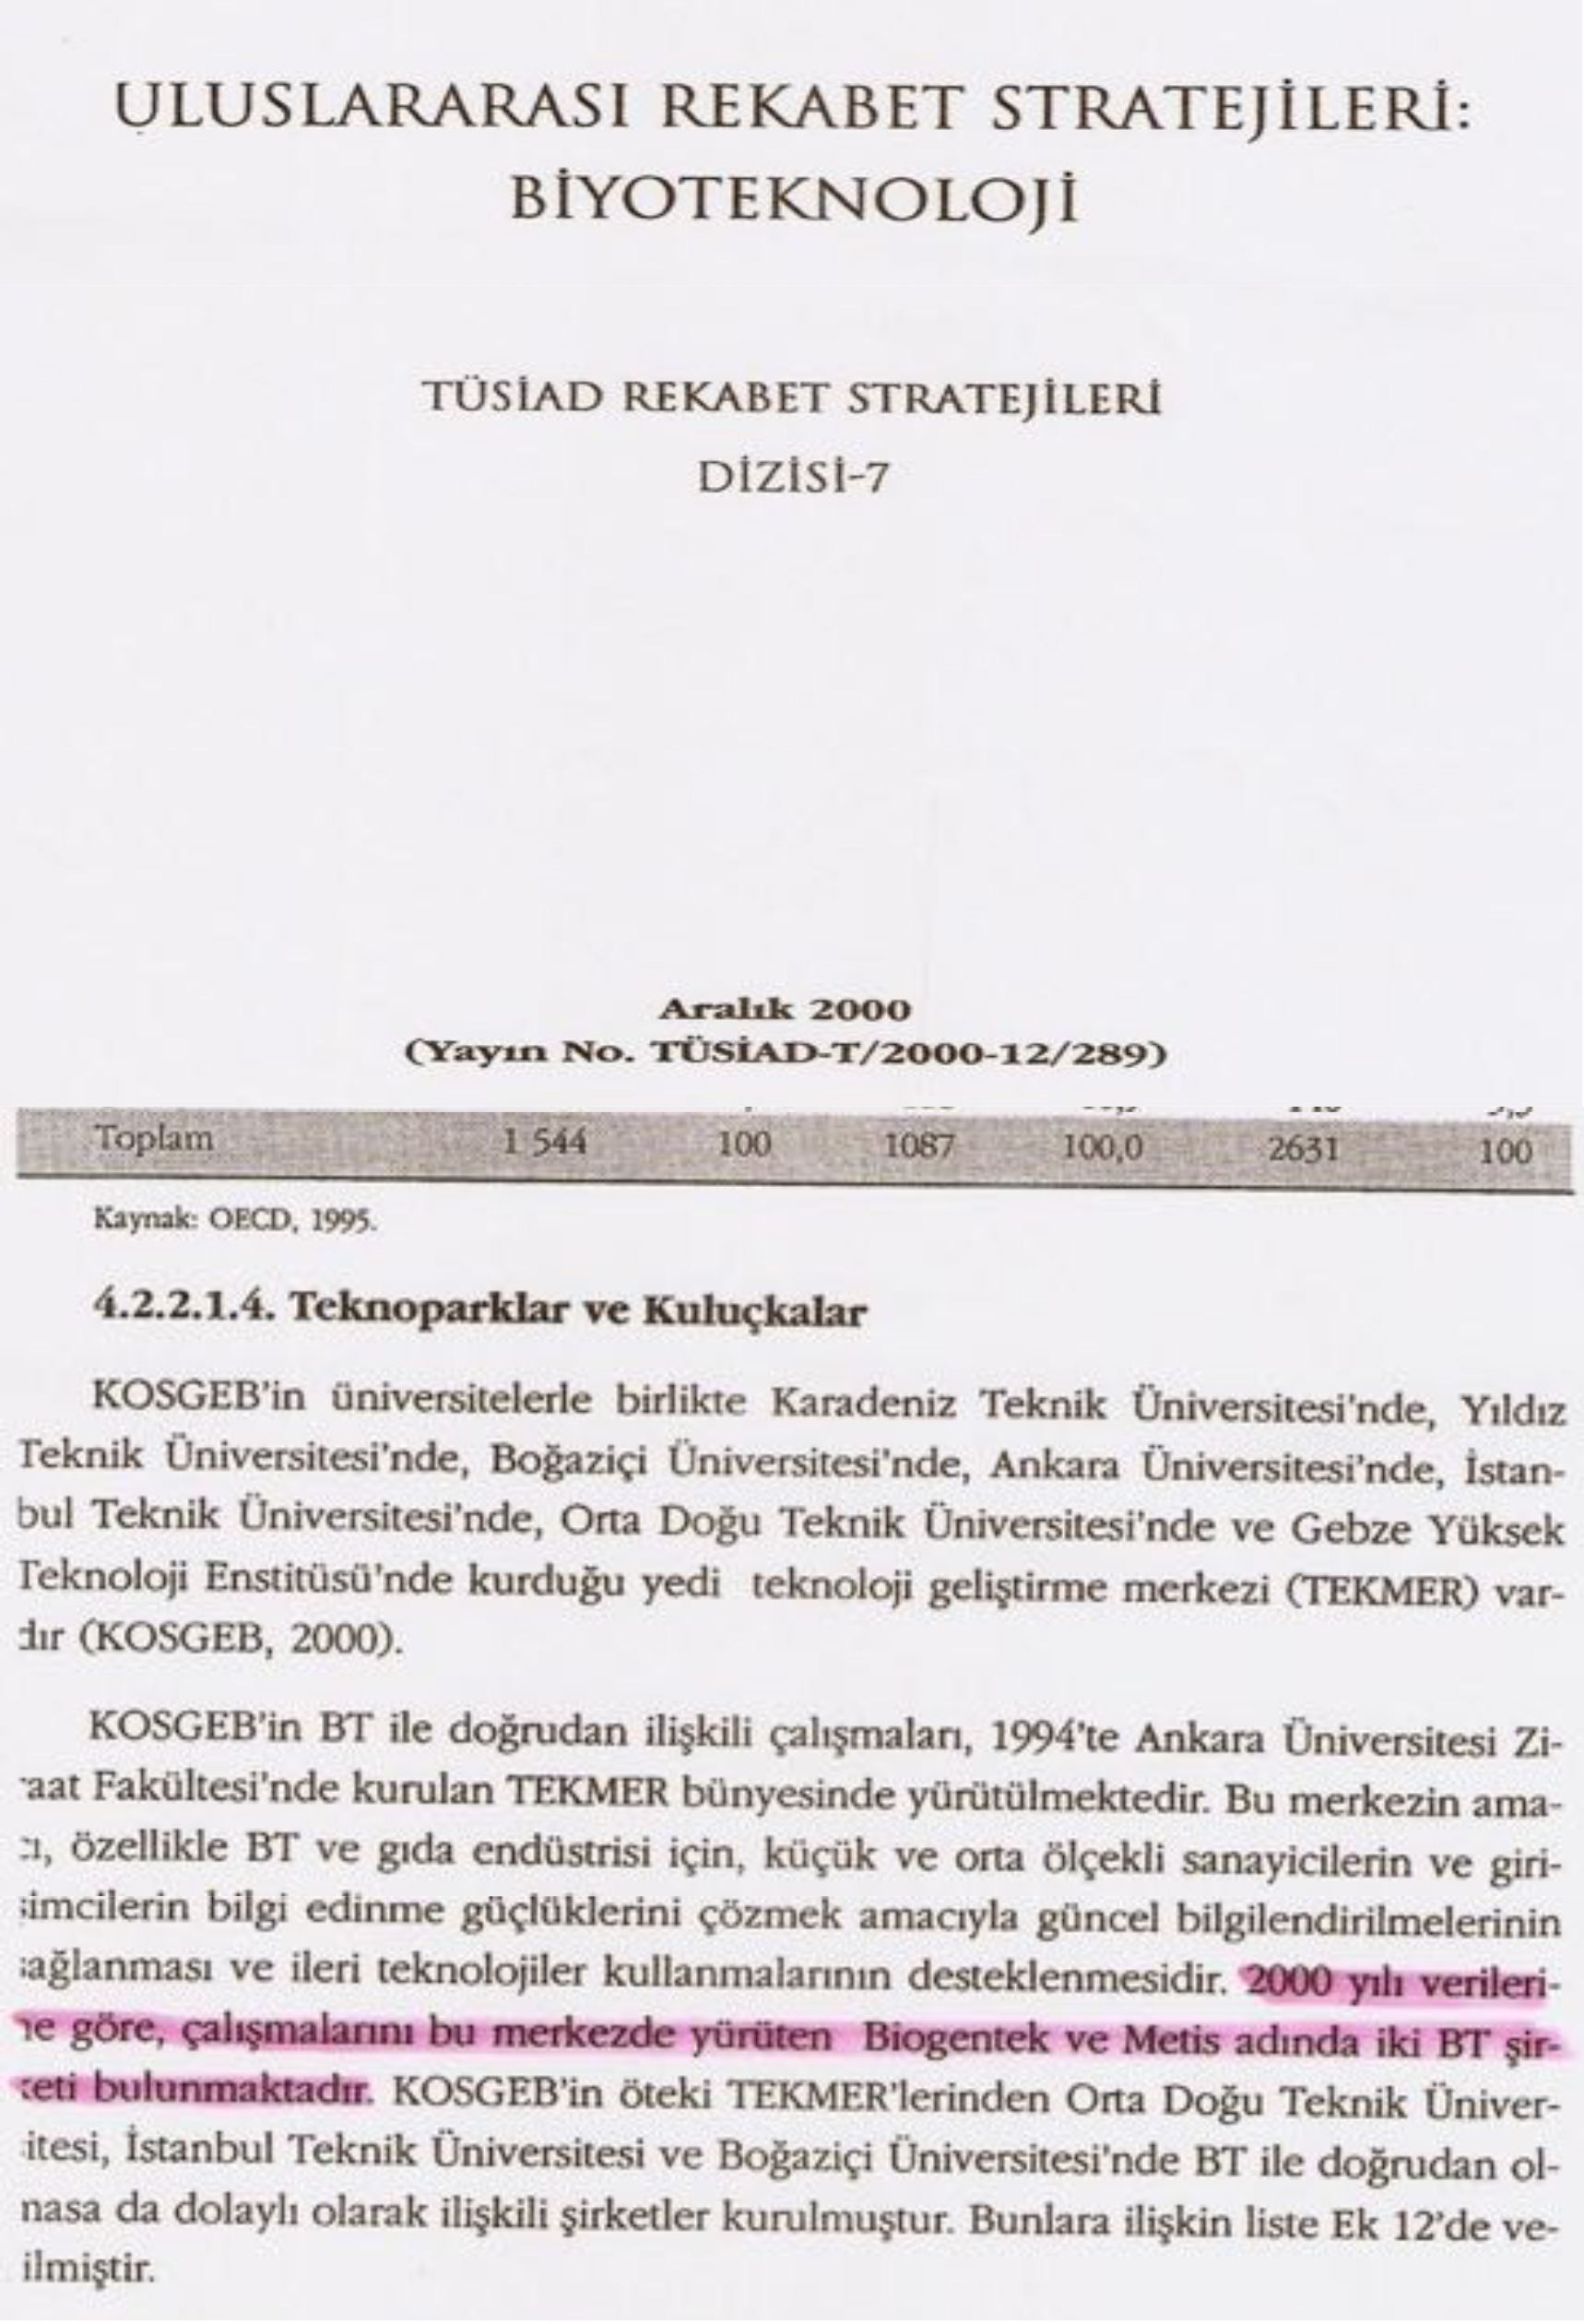 12/6/2000 - Metis in TUSIAD Biotechnology report 2000